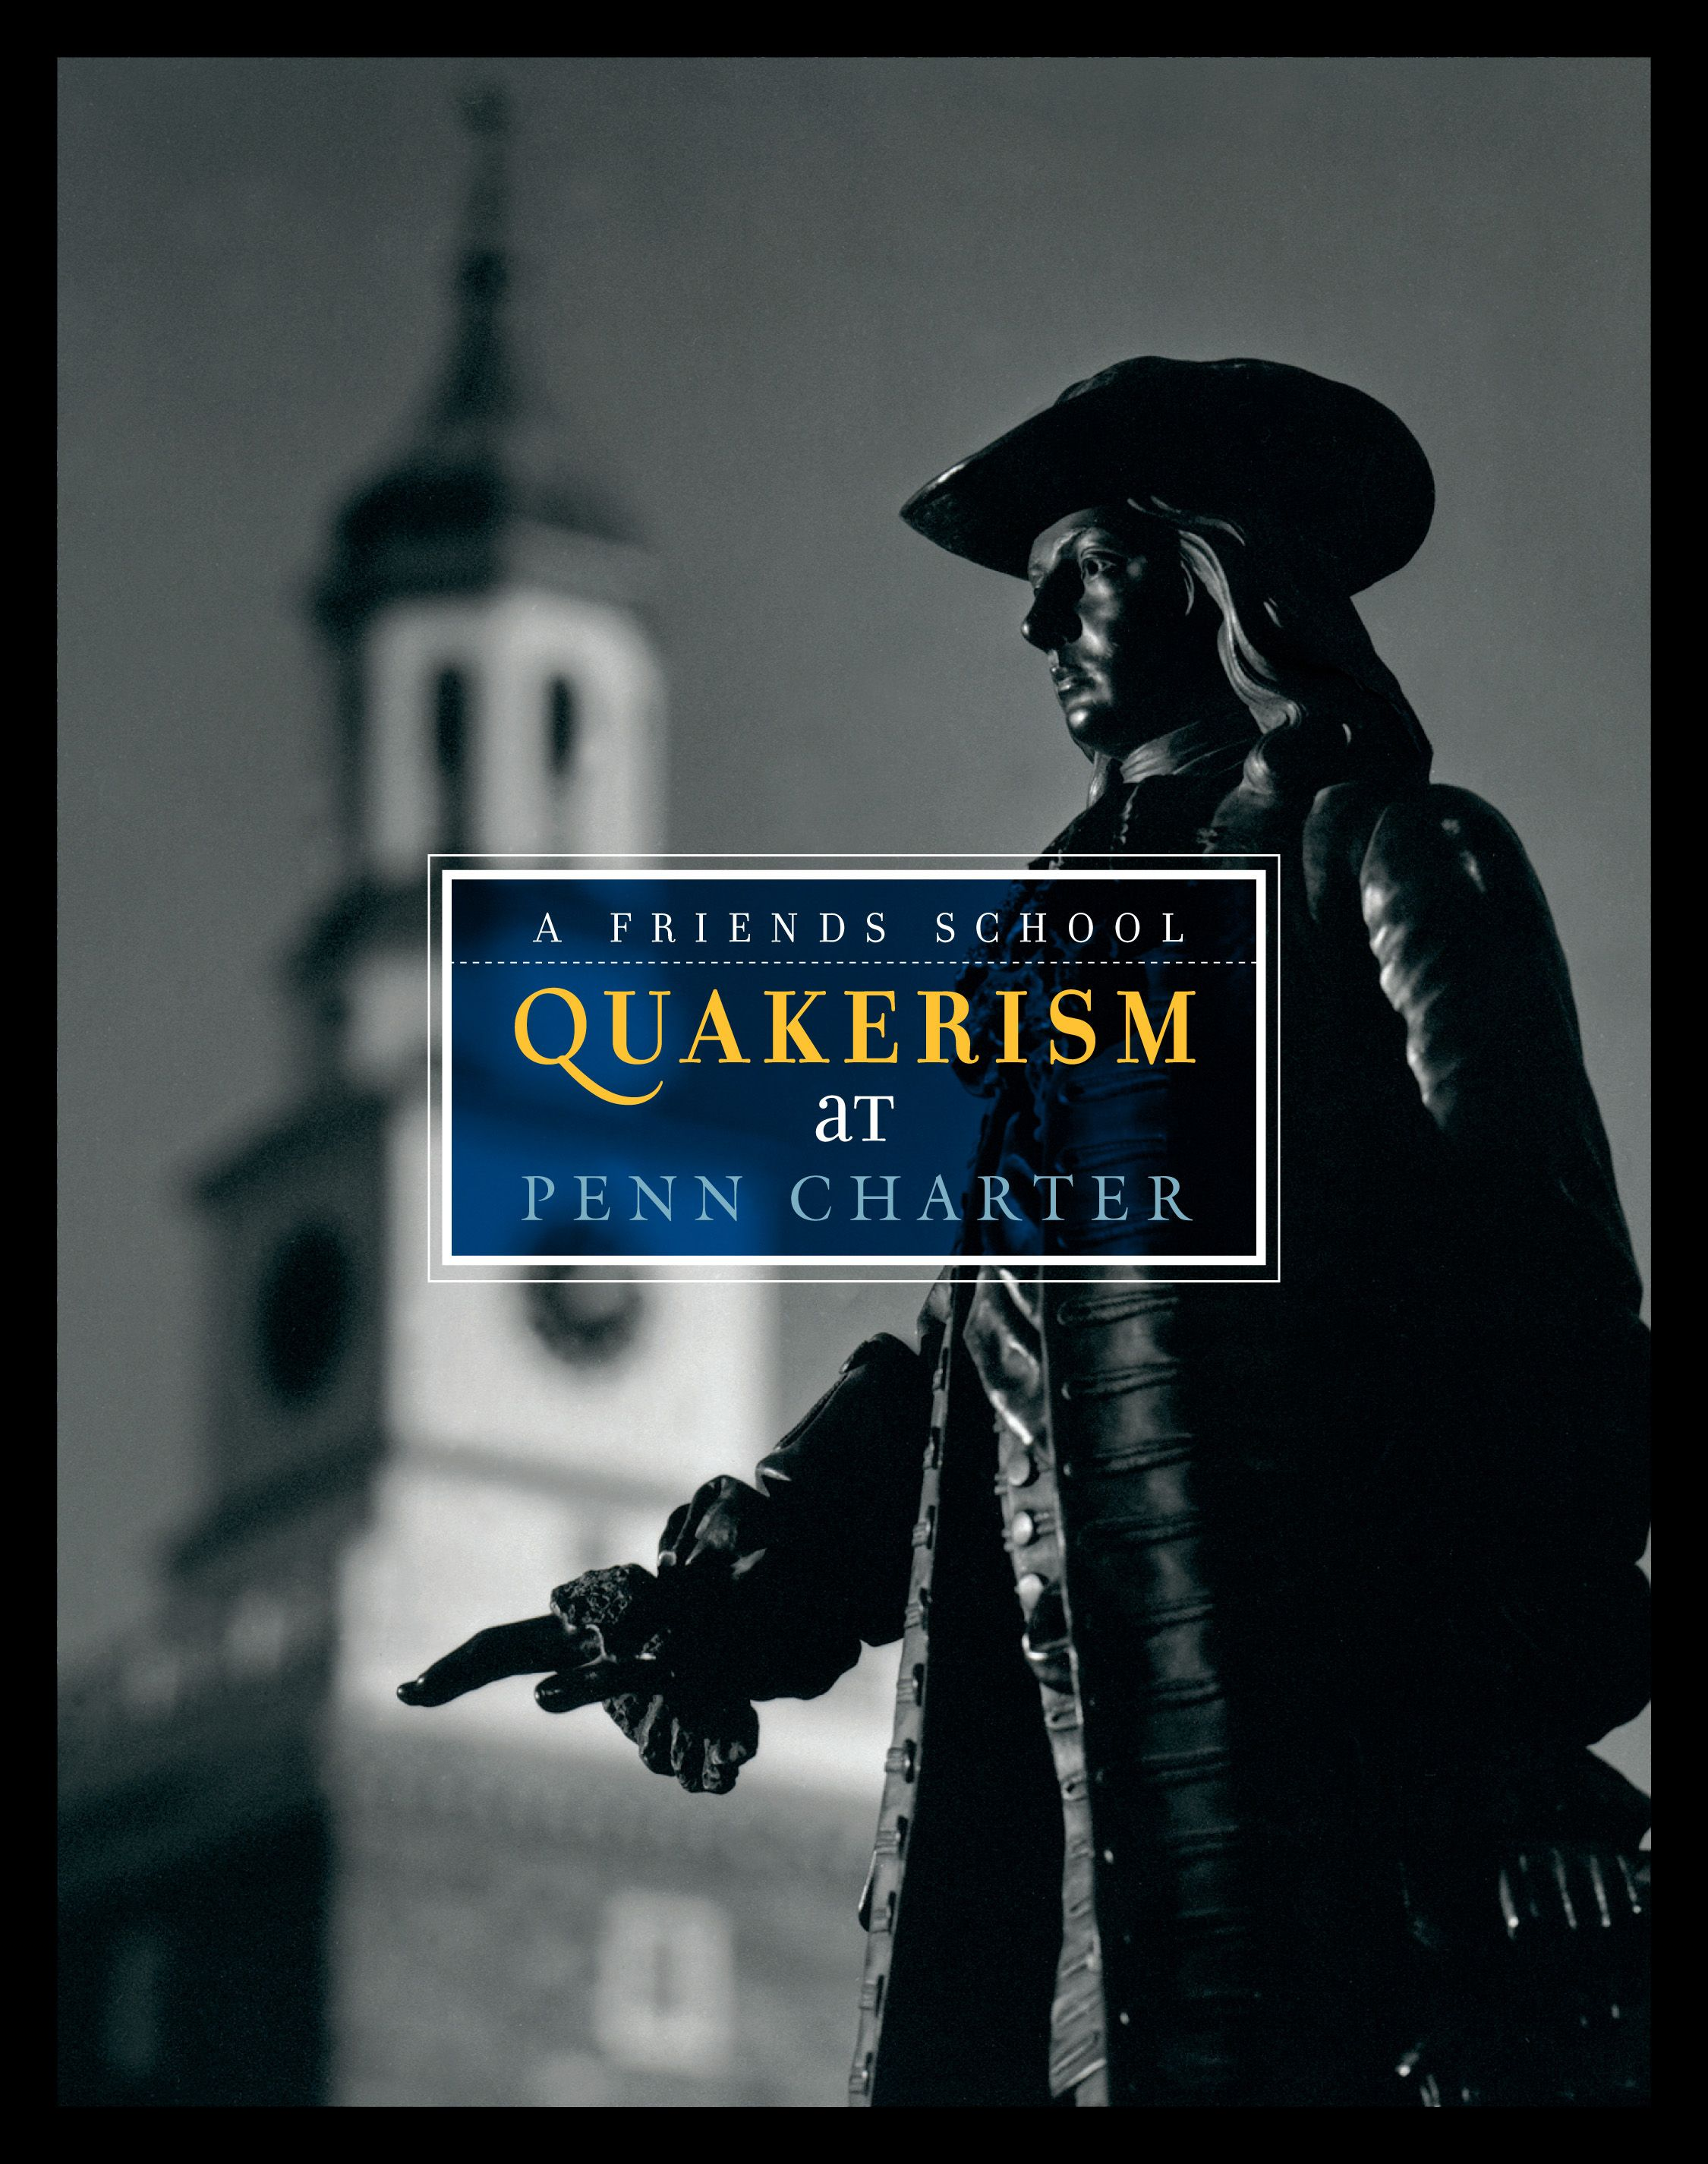 William Penn Charter Quakerism Brochure. [Turnaround Marketing Communications]